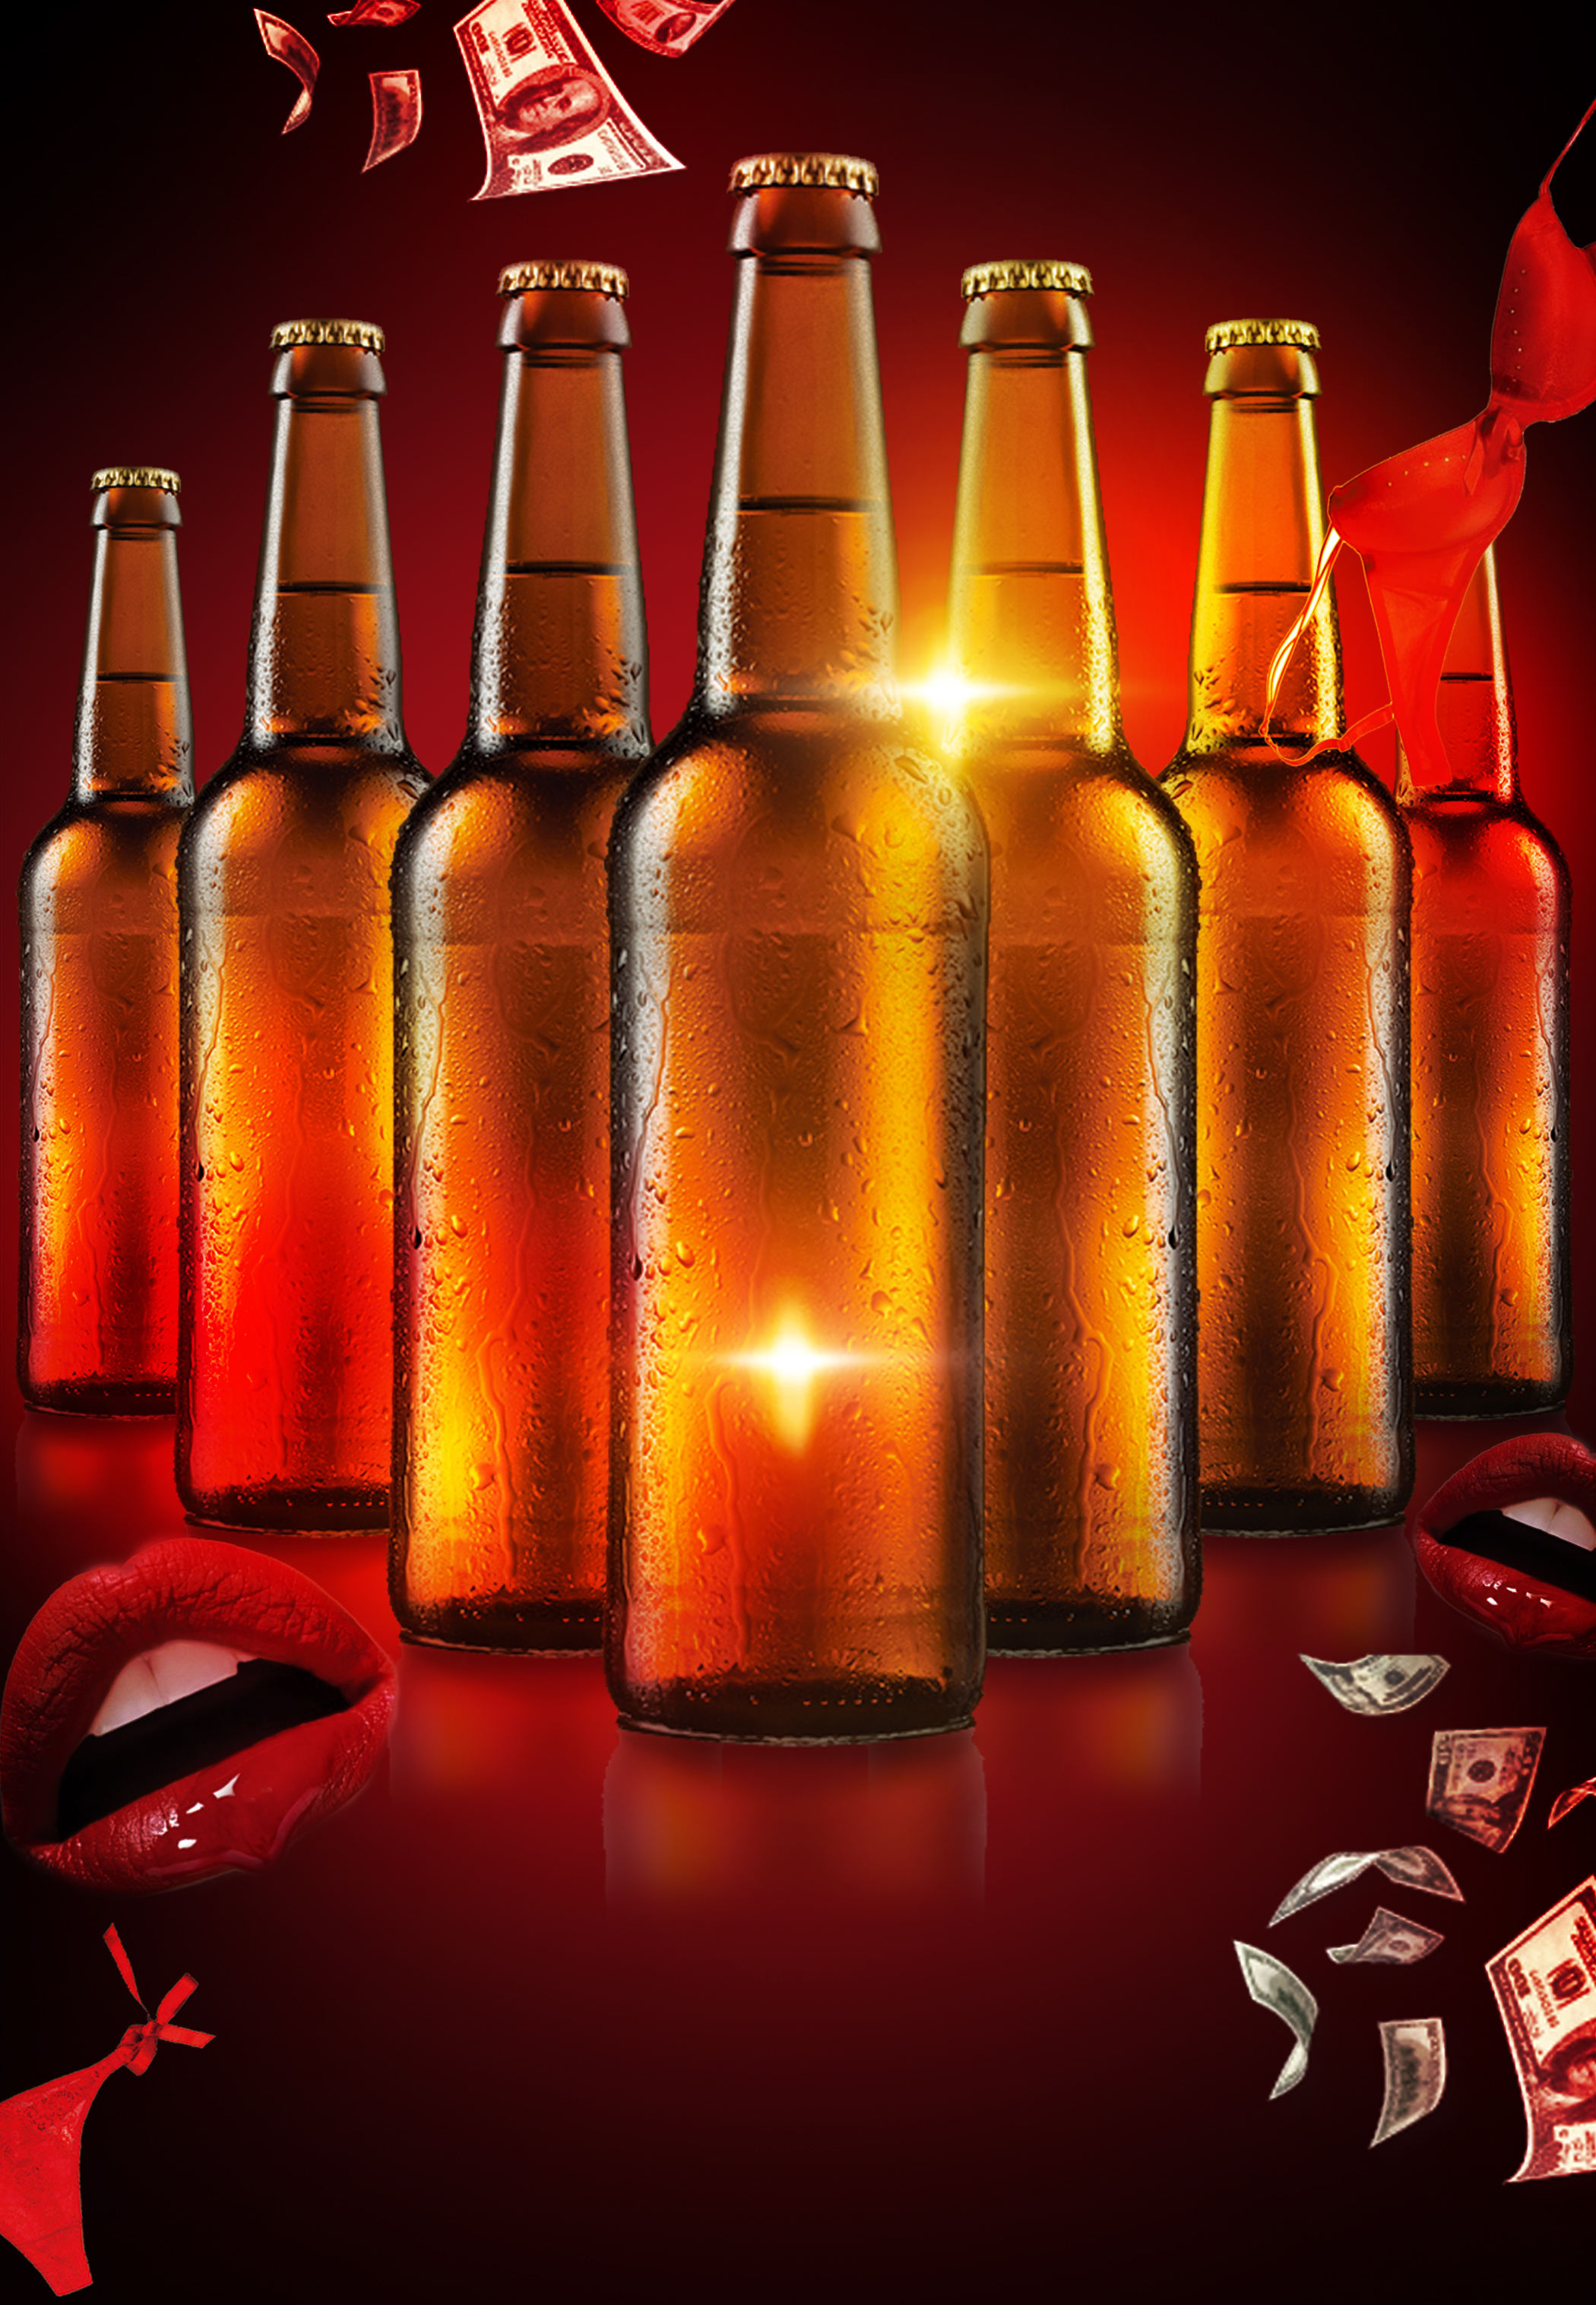 cool beer nightclub bar party poster background material